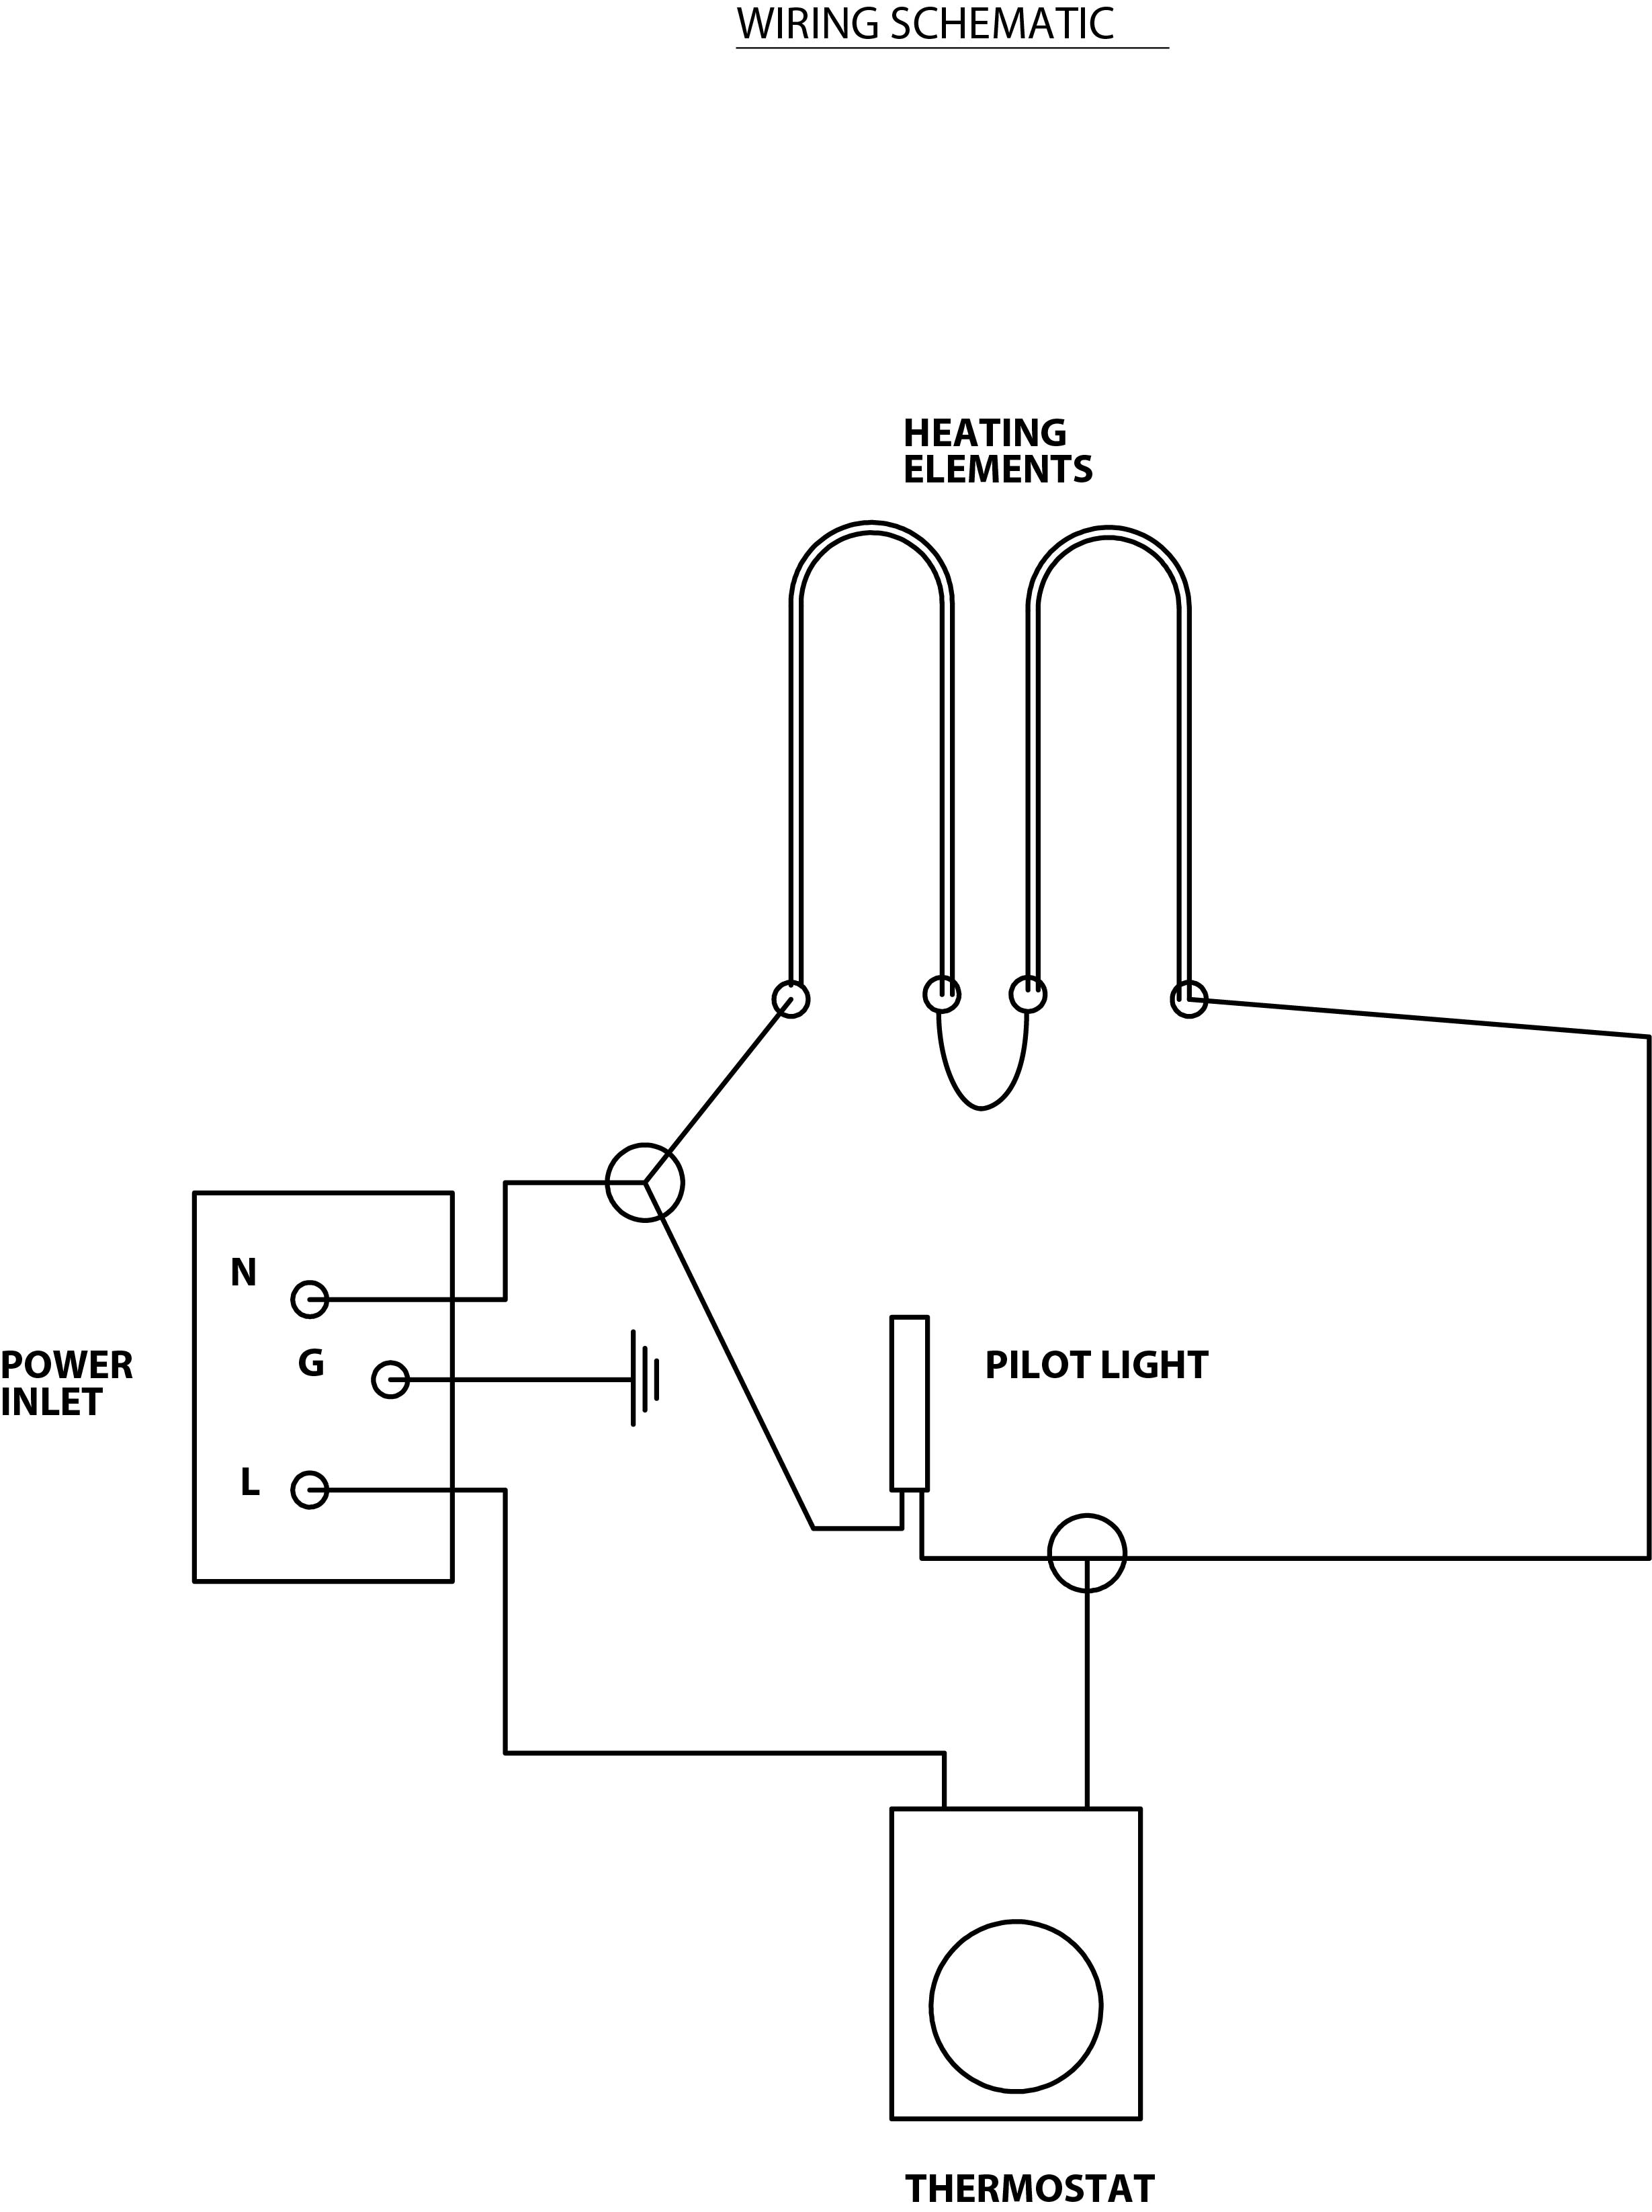 wiring diagramtype4 240v type 4 drywire� oven phoenix international hotpoint oven bake element wiring diagram at honlapkeszites.co